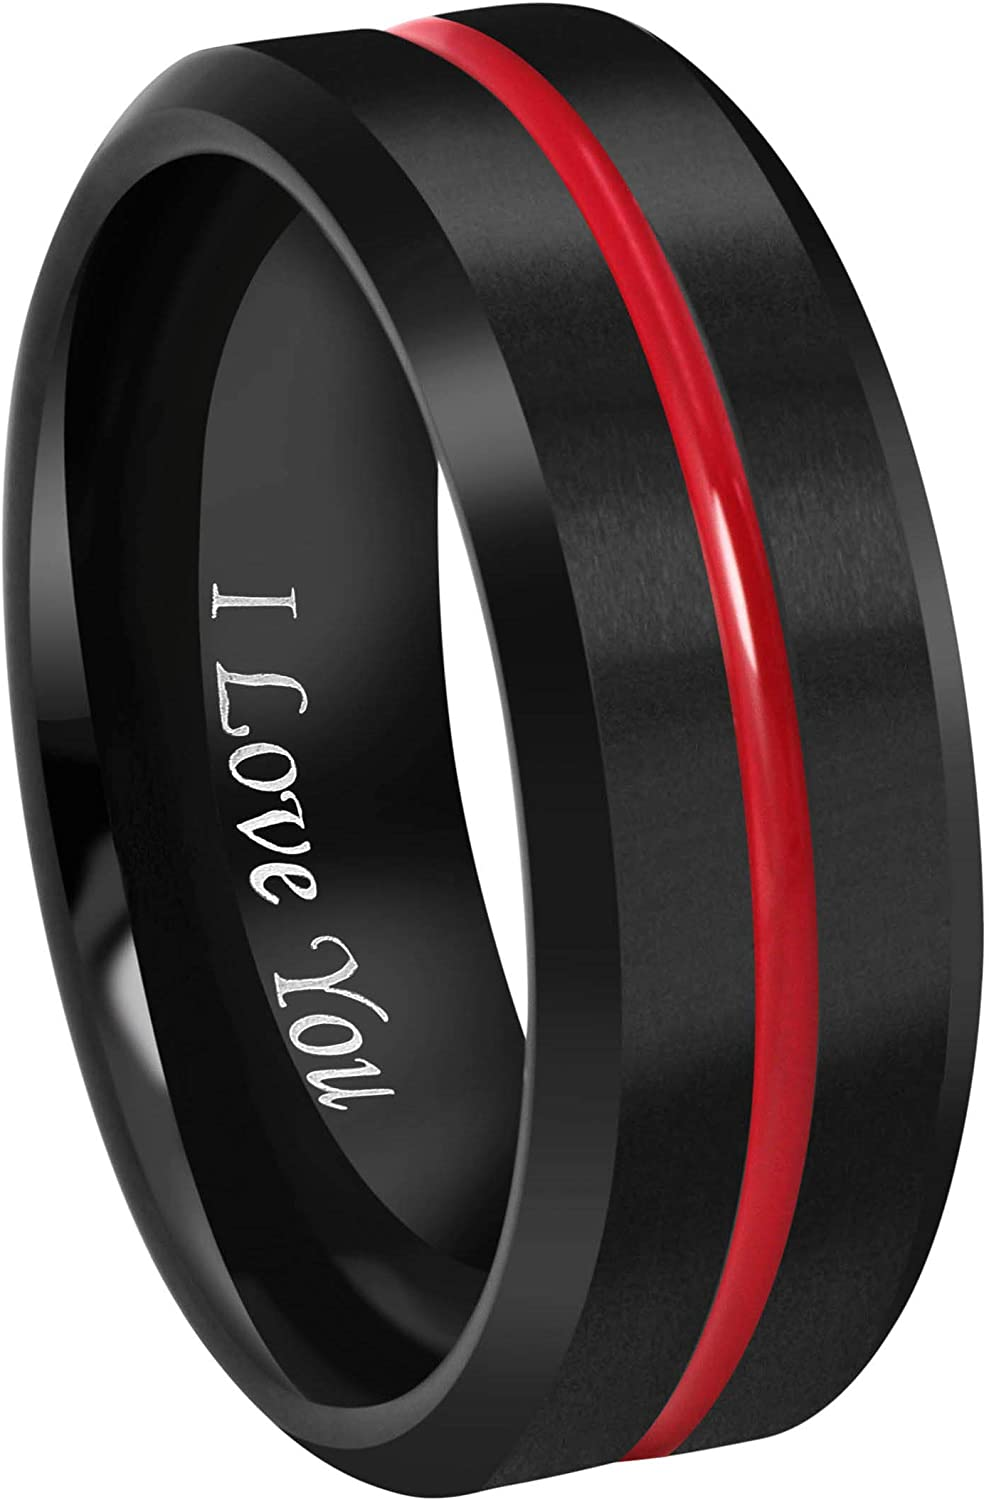 "Crownal 8mm Thin Red Groove Black Brushed Tungsten Carbide Wedding Band Ring Comfort Fit Engraved""I Love You"" Size 5 To 17"